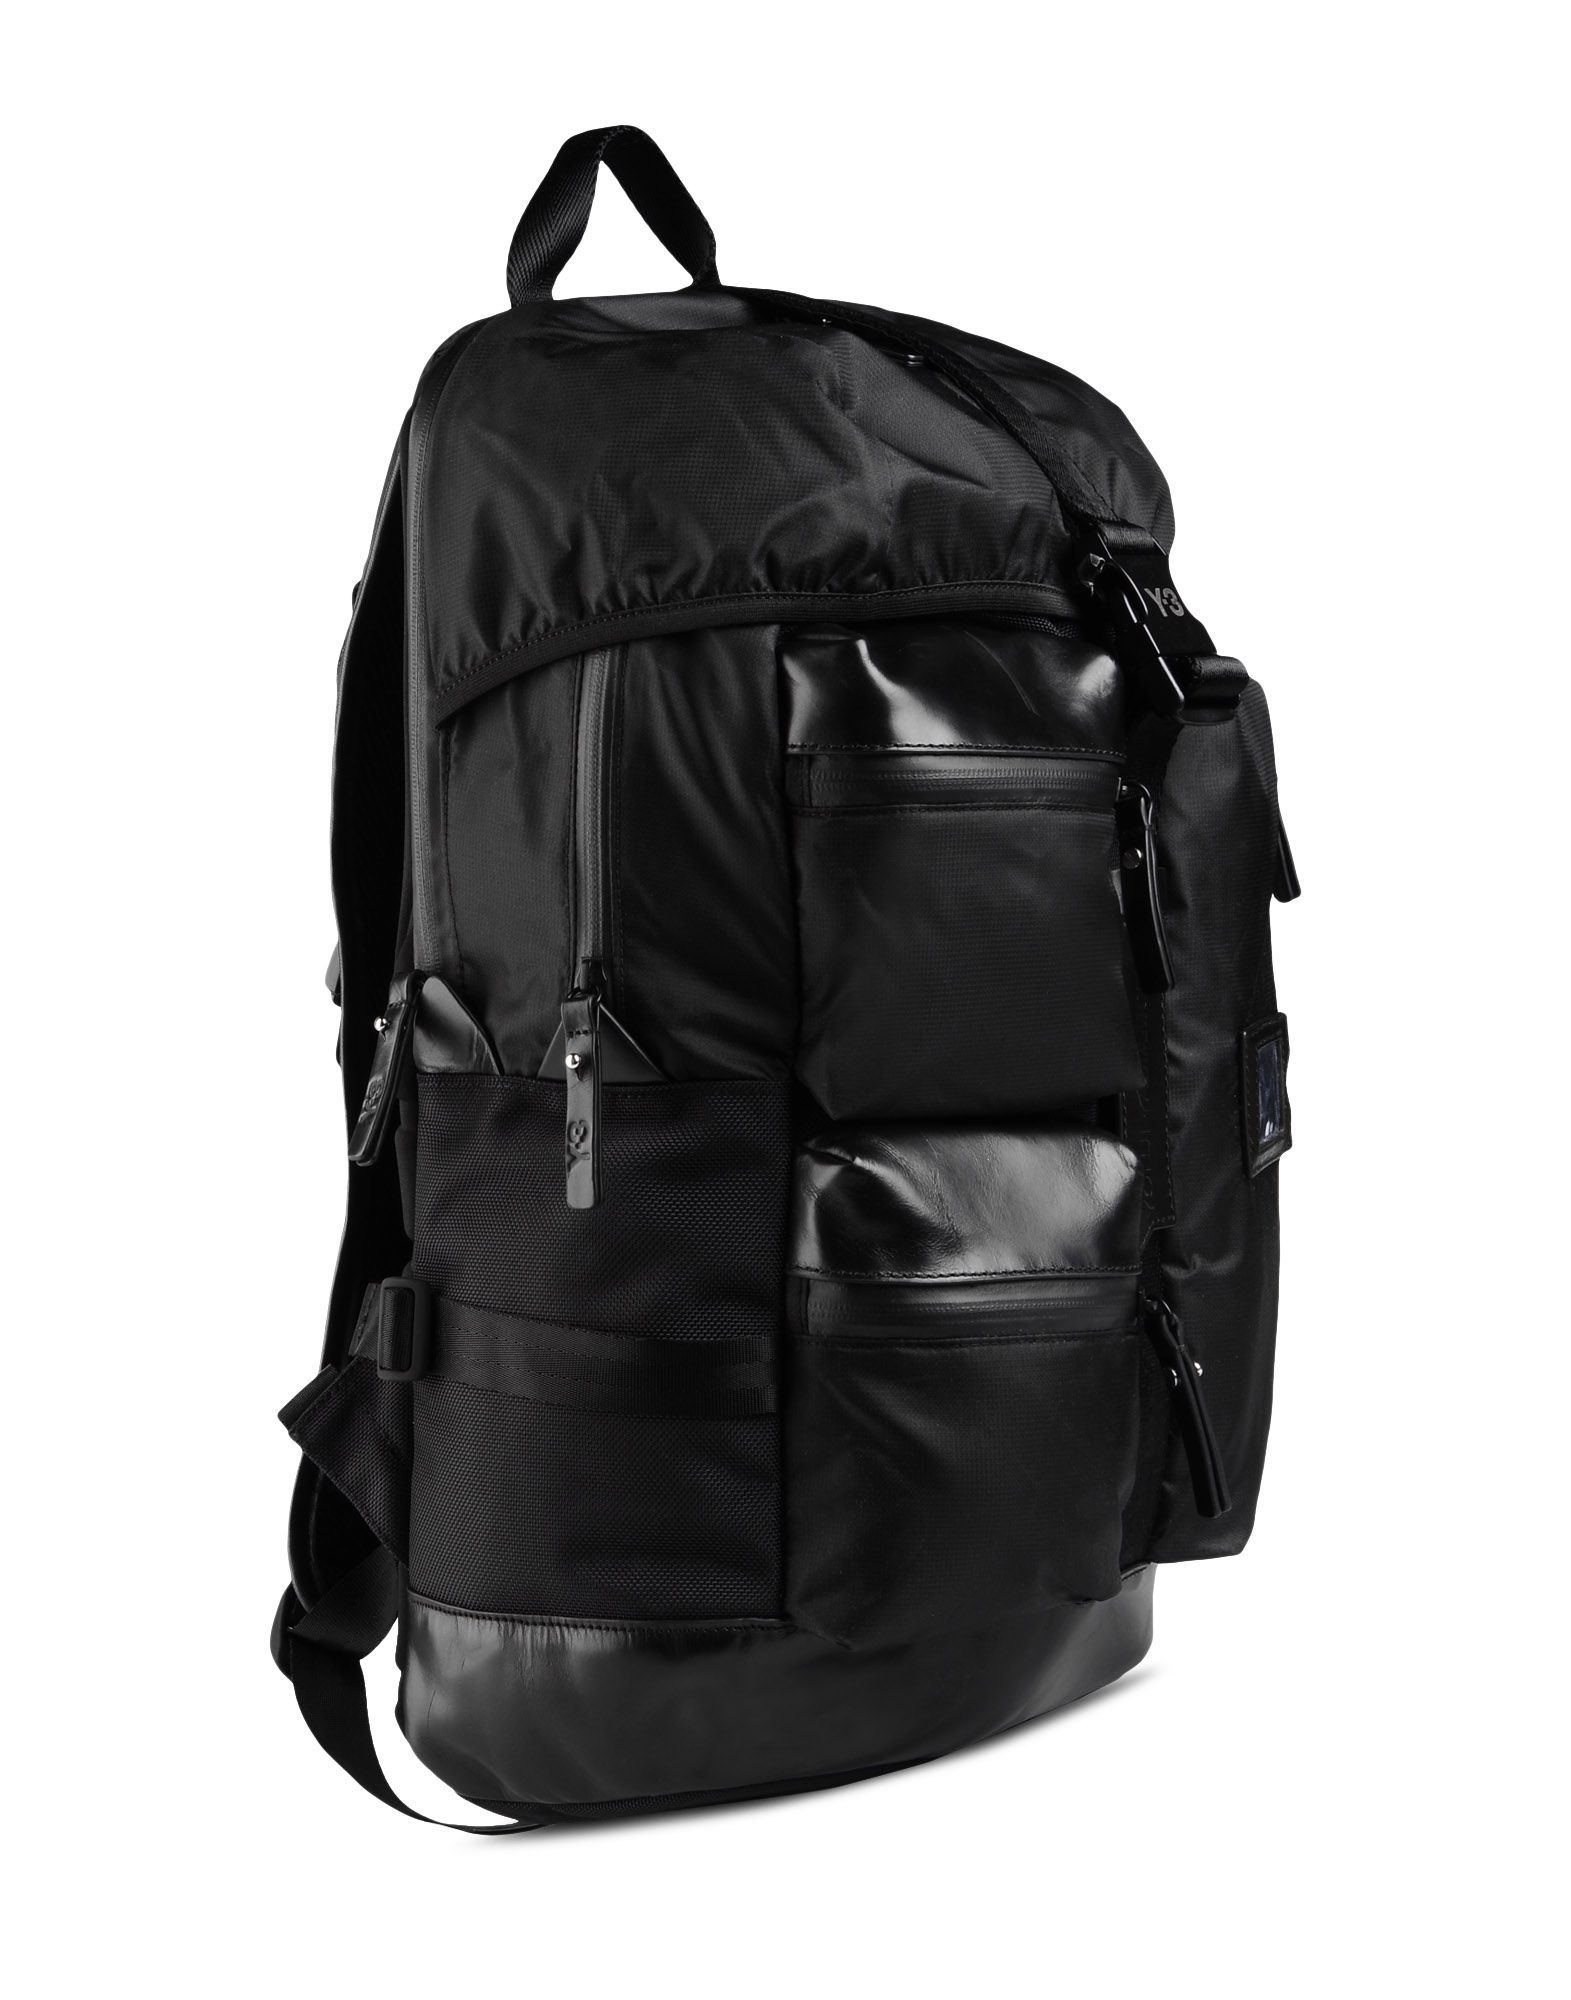 7b0c24447535 Y-3 Mobility Backpack HANDBAGS unisex Y-3 adidas